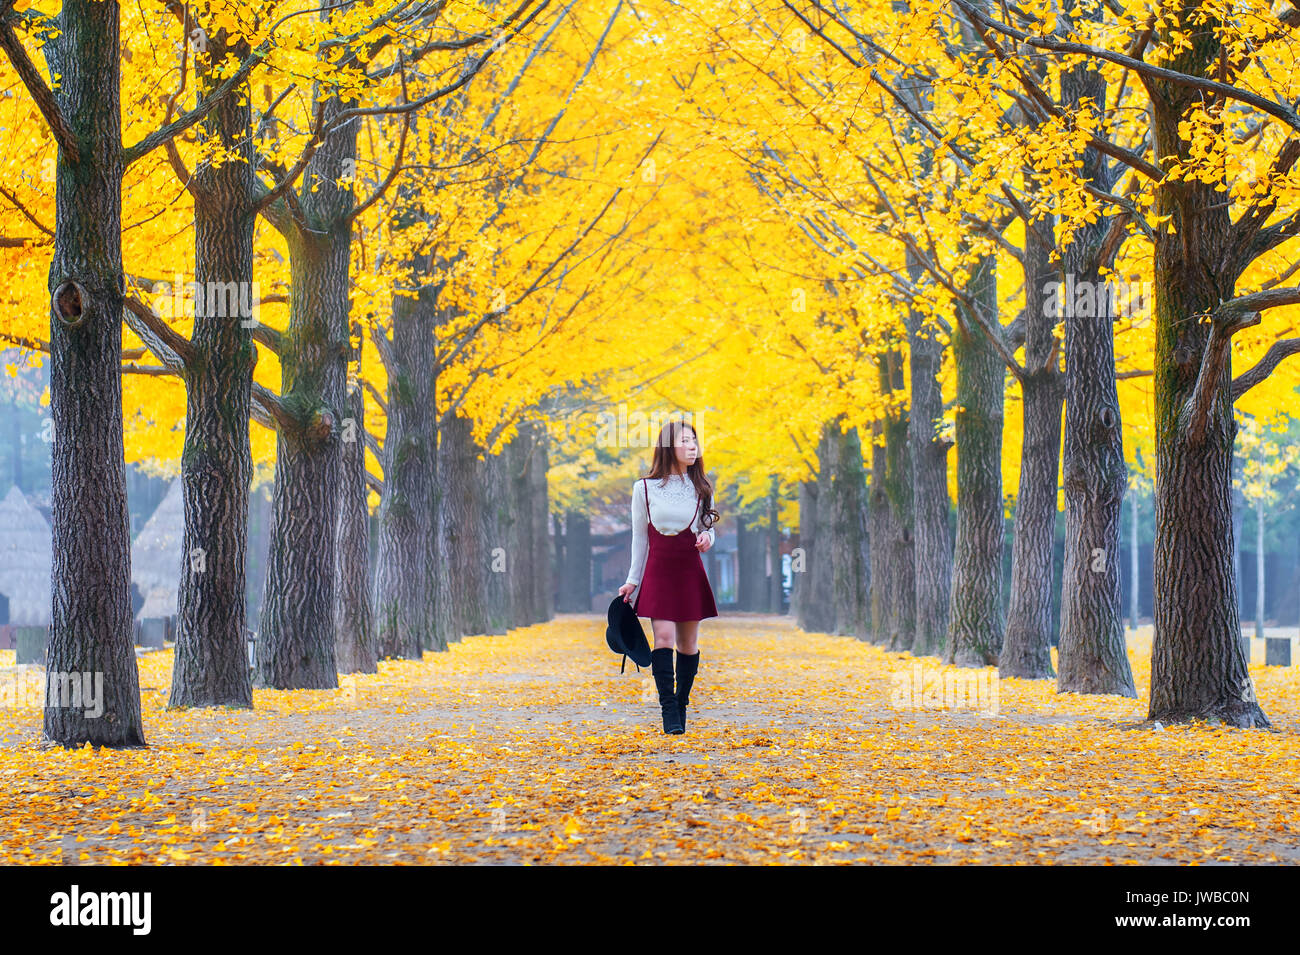 Nami Island High Resolution Stock Photography And Images Alamy